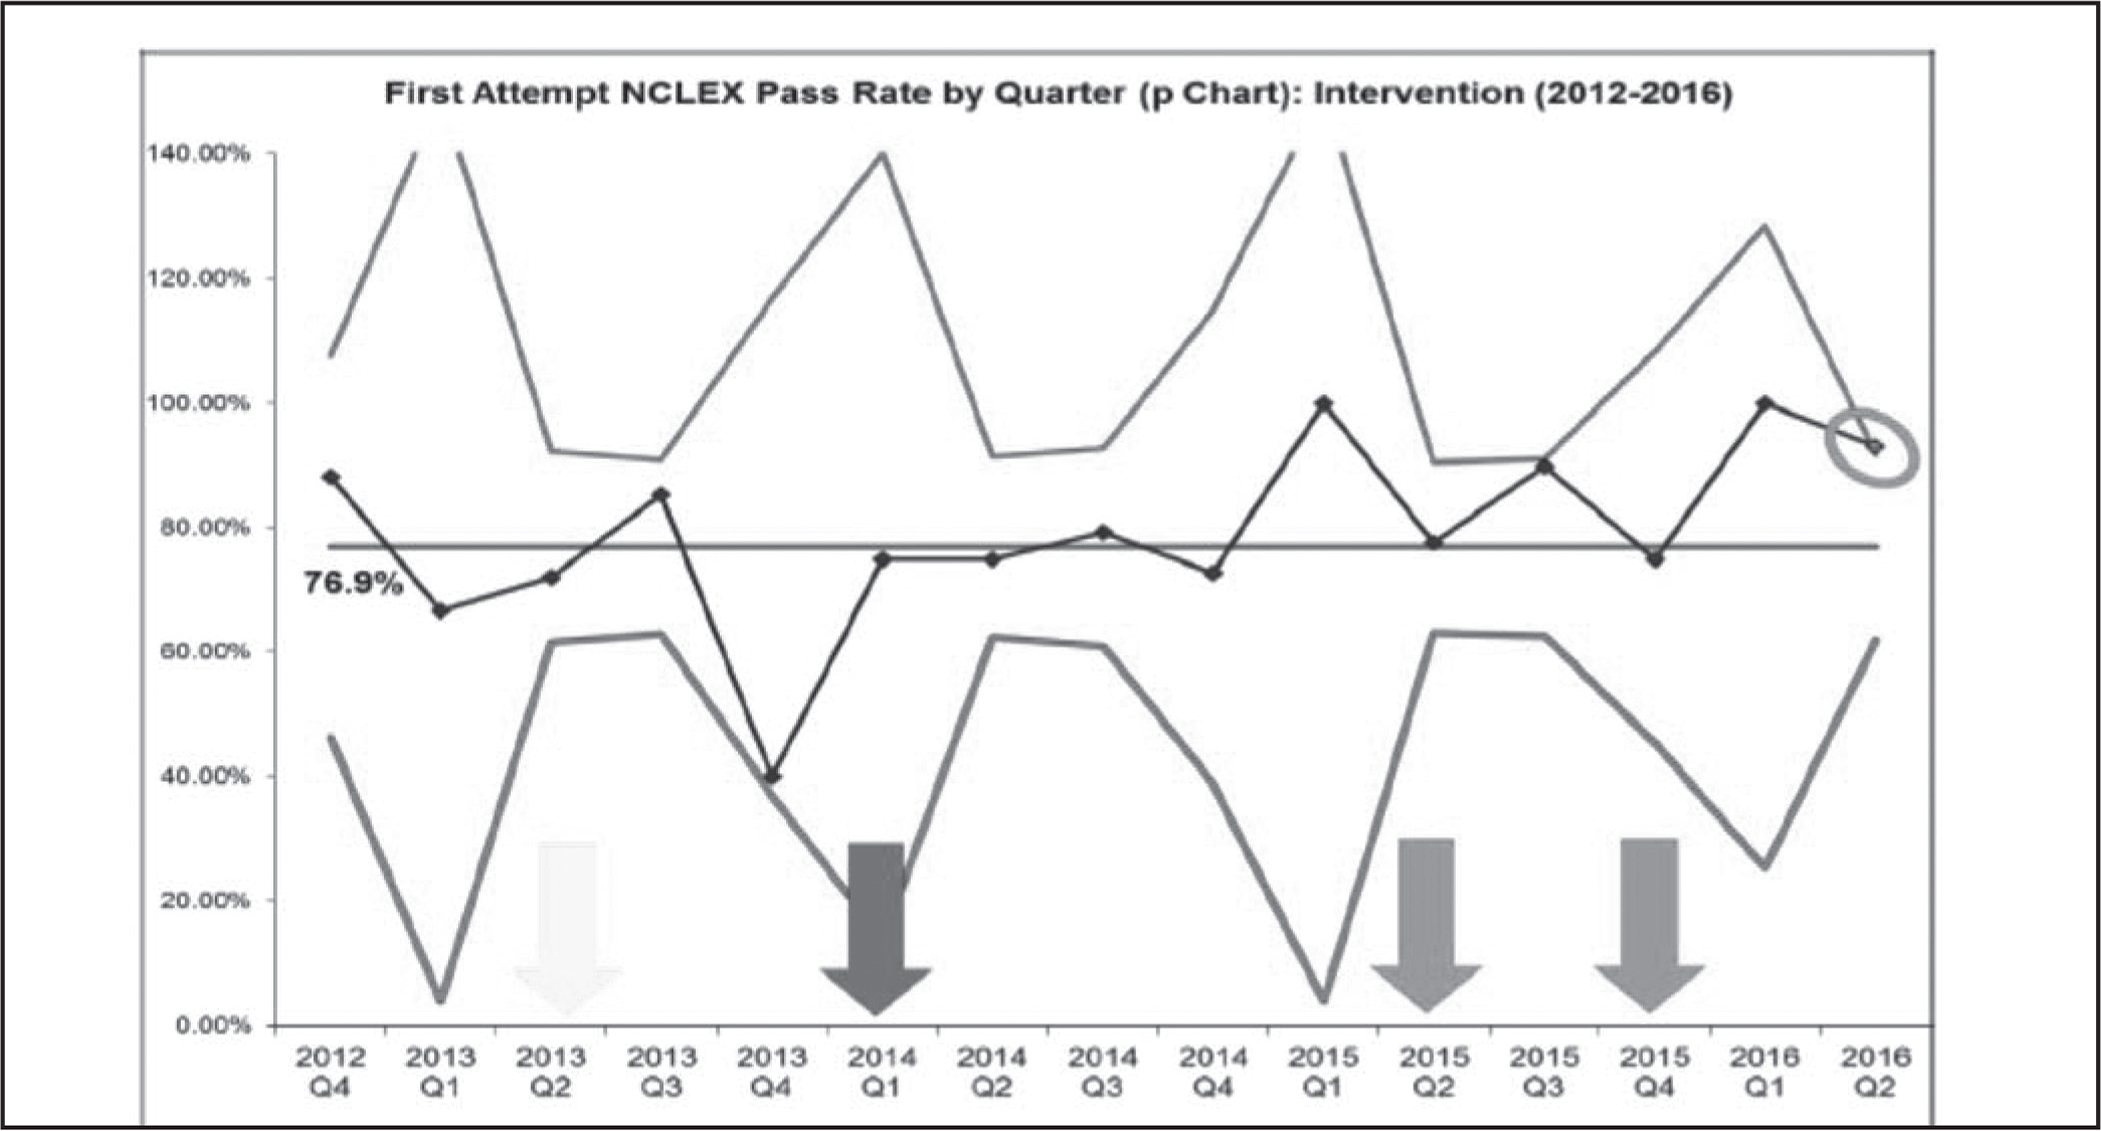 First attempt pass rate by quarter for the intervention period of 2012 to 2016. The center line denotes overall mean proportion passing the NCLEX-RN (2013–2015 baseline) prior to the intervention and is held constant during the intervention period to detect change from baseline postintervention. The squares and lines connecting them denote mean NCLEX-RN pass rate at each individual administration time point (each quarter). The uppermost and lowermost solid lines denote three sigma deviation upper and lower control limits, respectively (approximately 3 standard deviations above and below the mean). The point circled denotes a special cause signal (point above the upper control limit) indicating a significant deviation from the overall mean (p < .01). Arrows (L to R): The leftmost arrow indicates changes in NCLEX-RN format and administration; the second arrow denotes the beginning of quality improvement action committee work, and the final two arrows denote Plan-Do-Study-Act (PDSA) cycles 1 and 2, respectively.